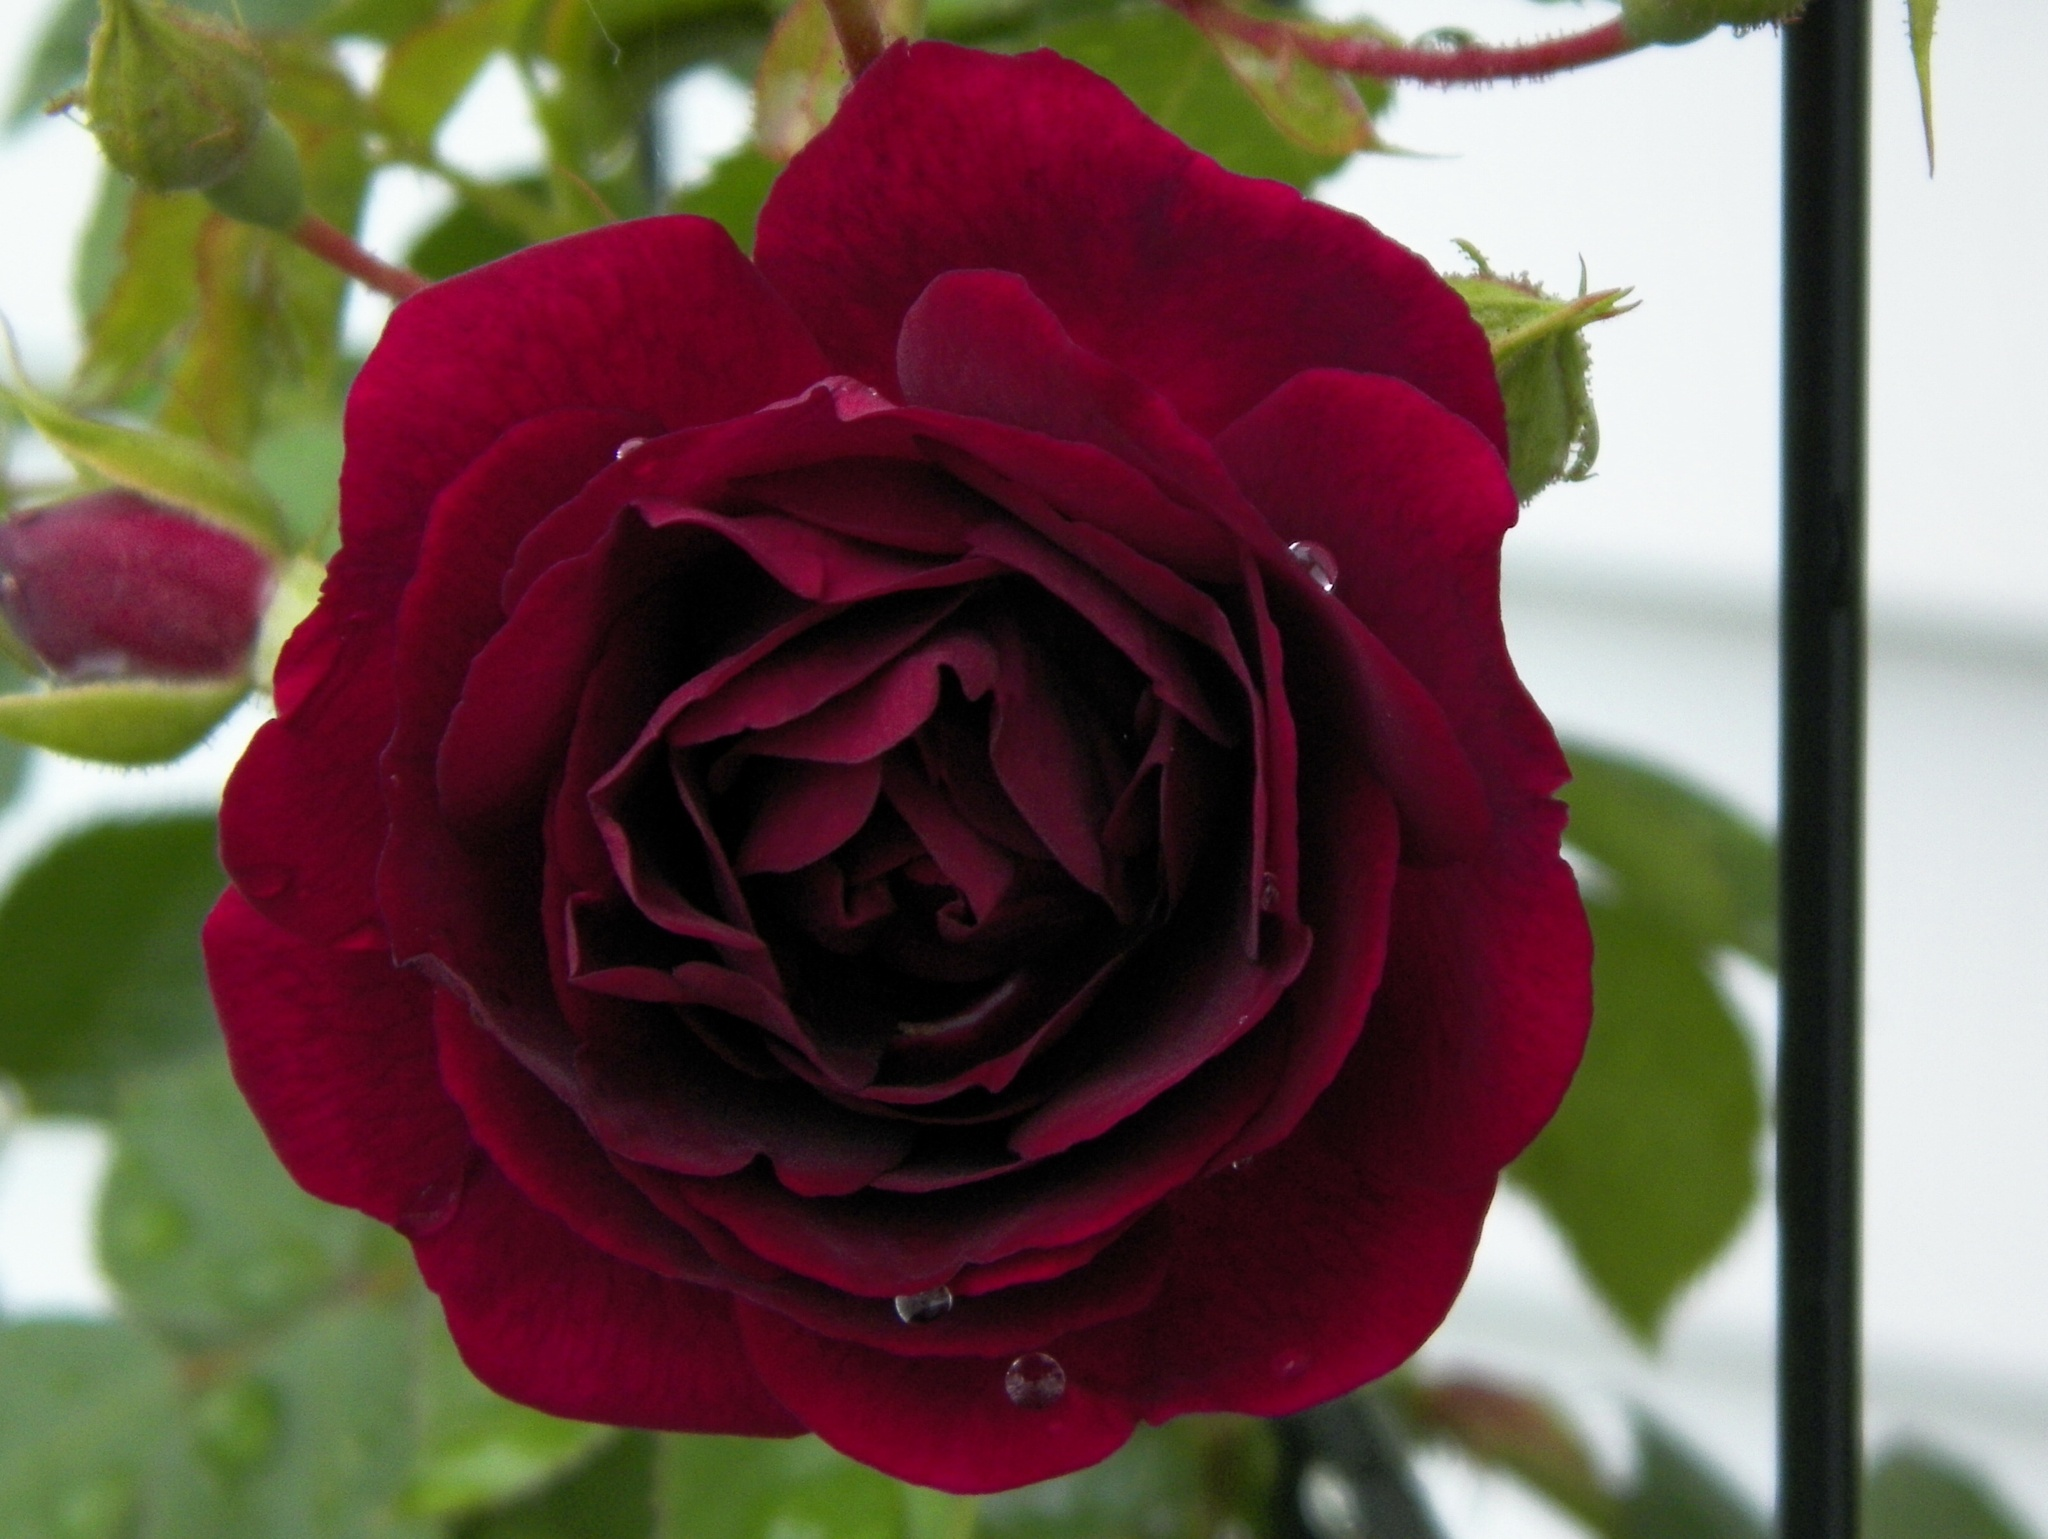 Rose by Marilyn S. Martin